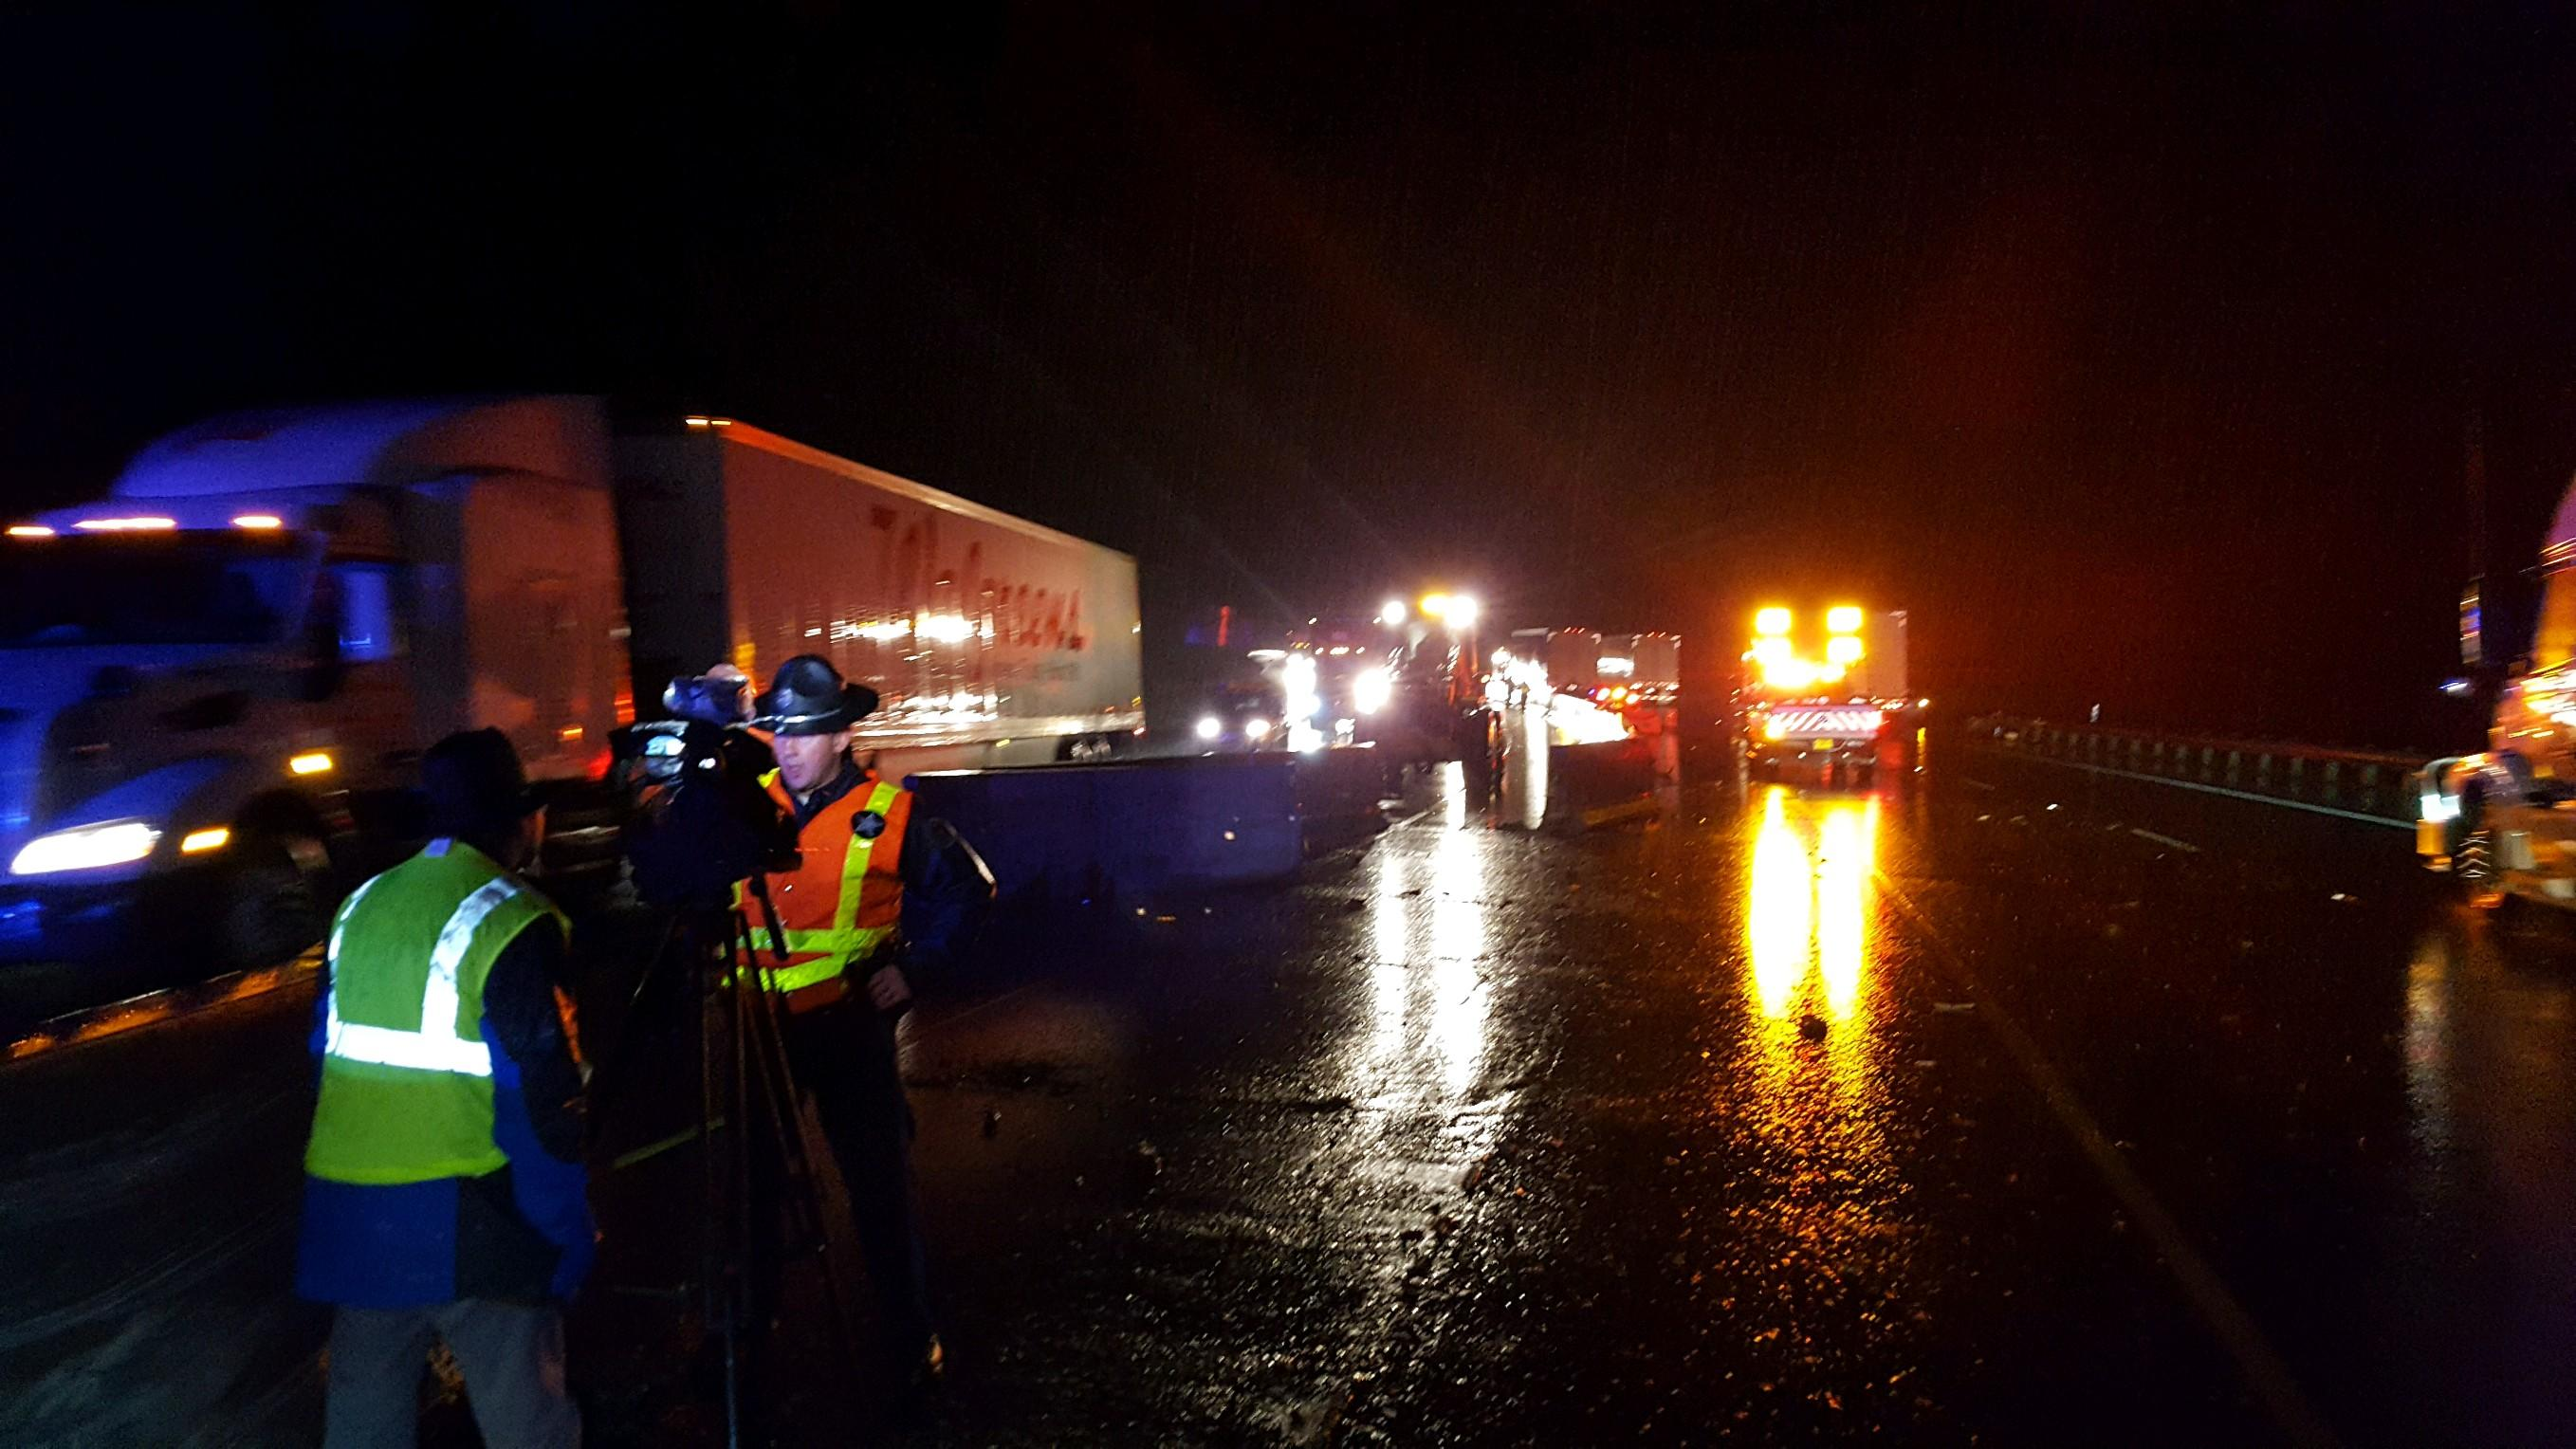 A truck driver lost control on Interstate 5 and crashed in the center concrete barrier, pushing sections of the barrier into oncoming traffic Wednesday night, Oregon State Police said. Four vehicles hit the barriers, and a pickup truck hit a commercial truck driver who stopped to try to warn other motorists, according to police. (OSP)